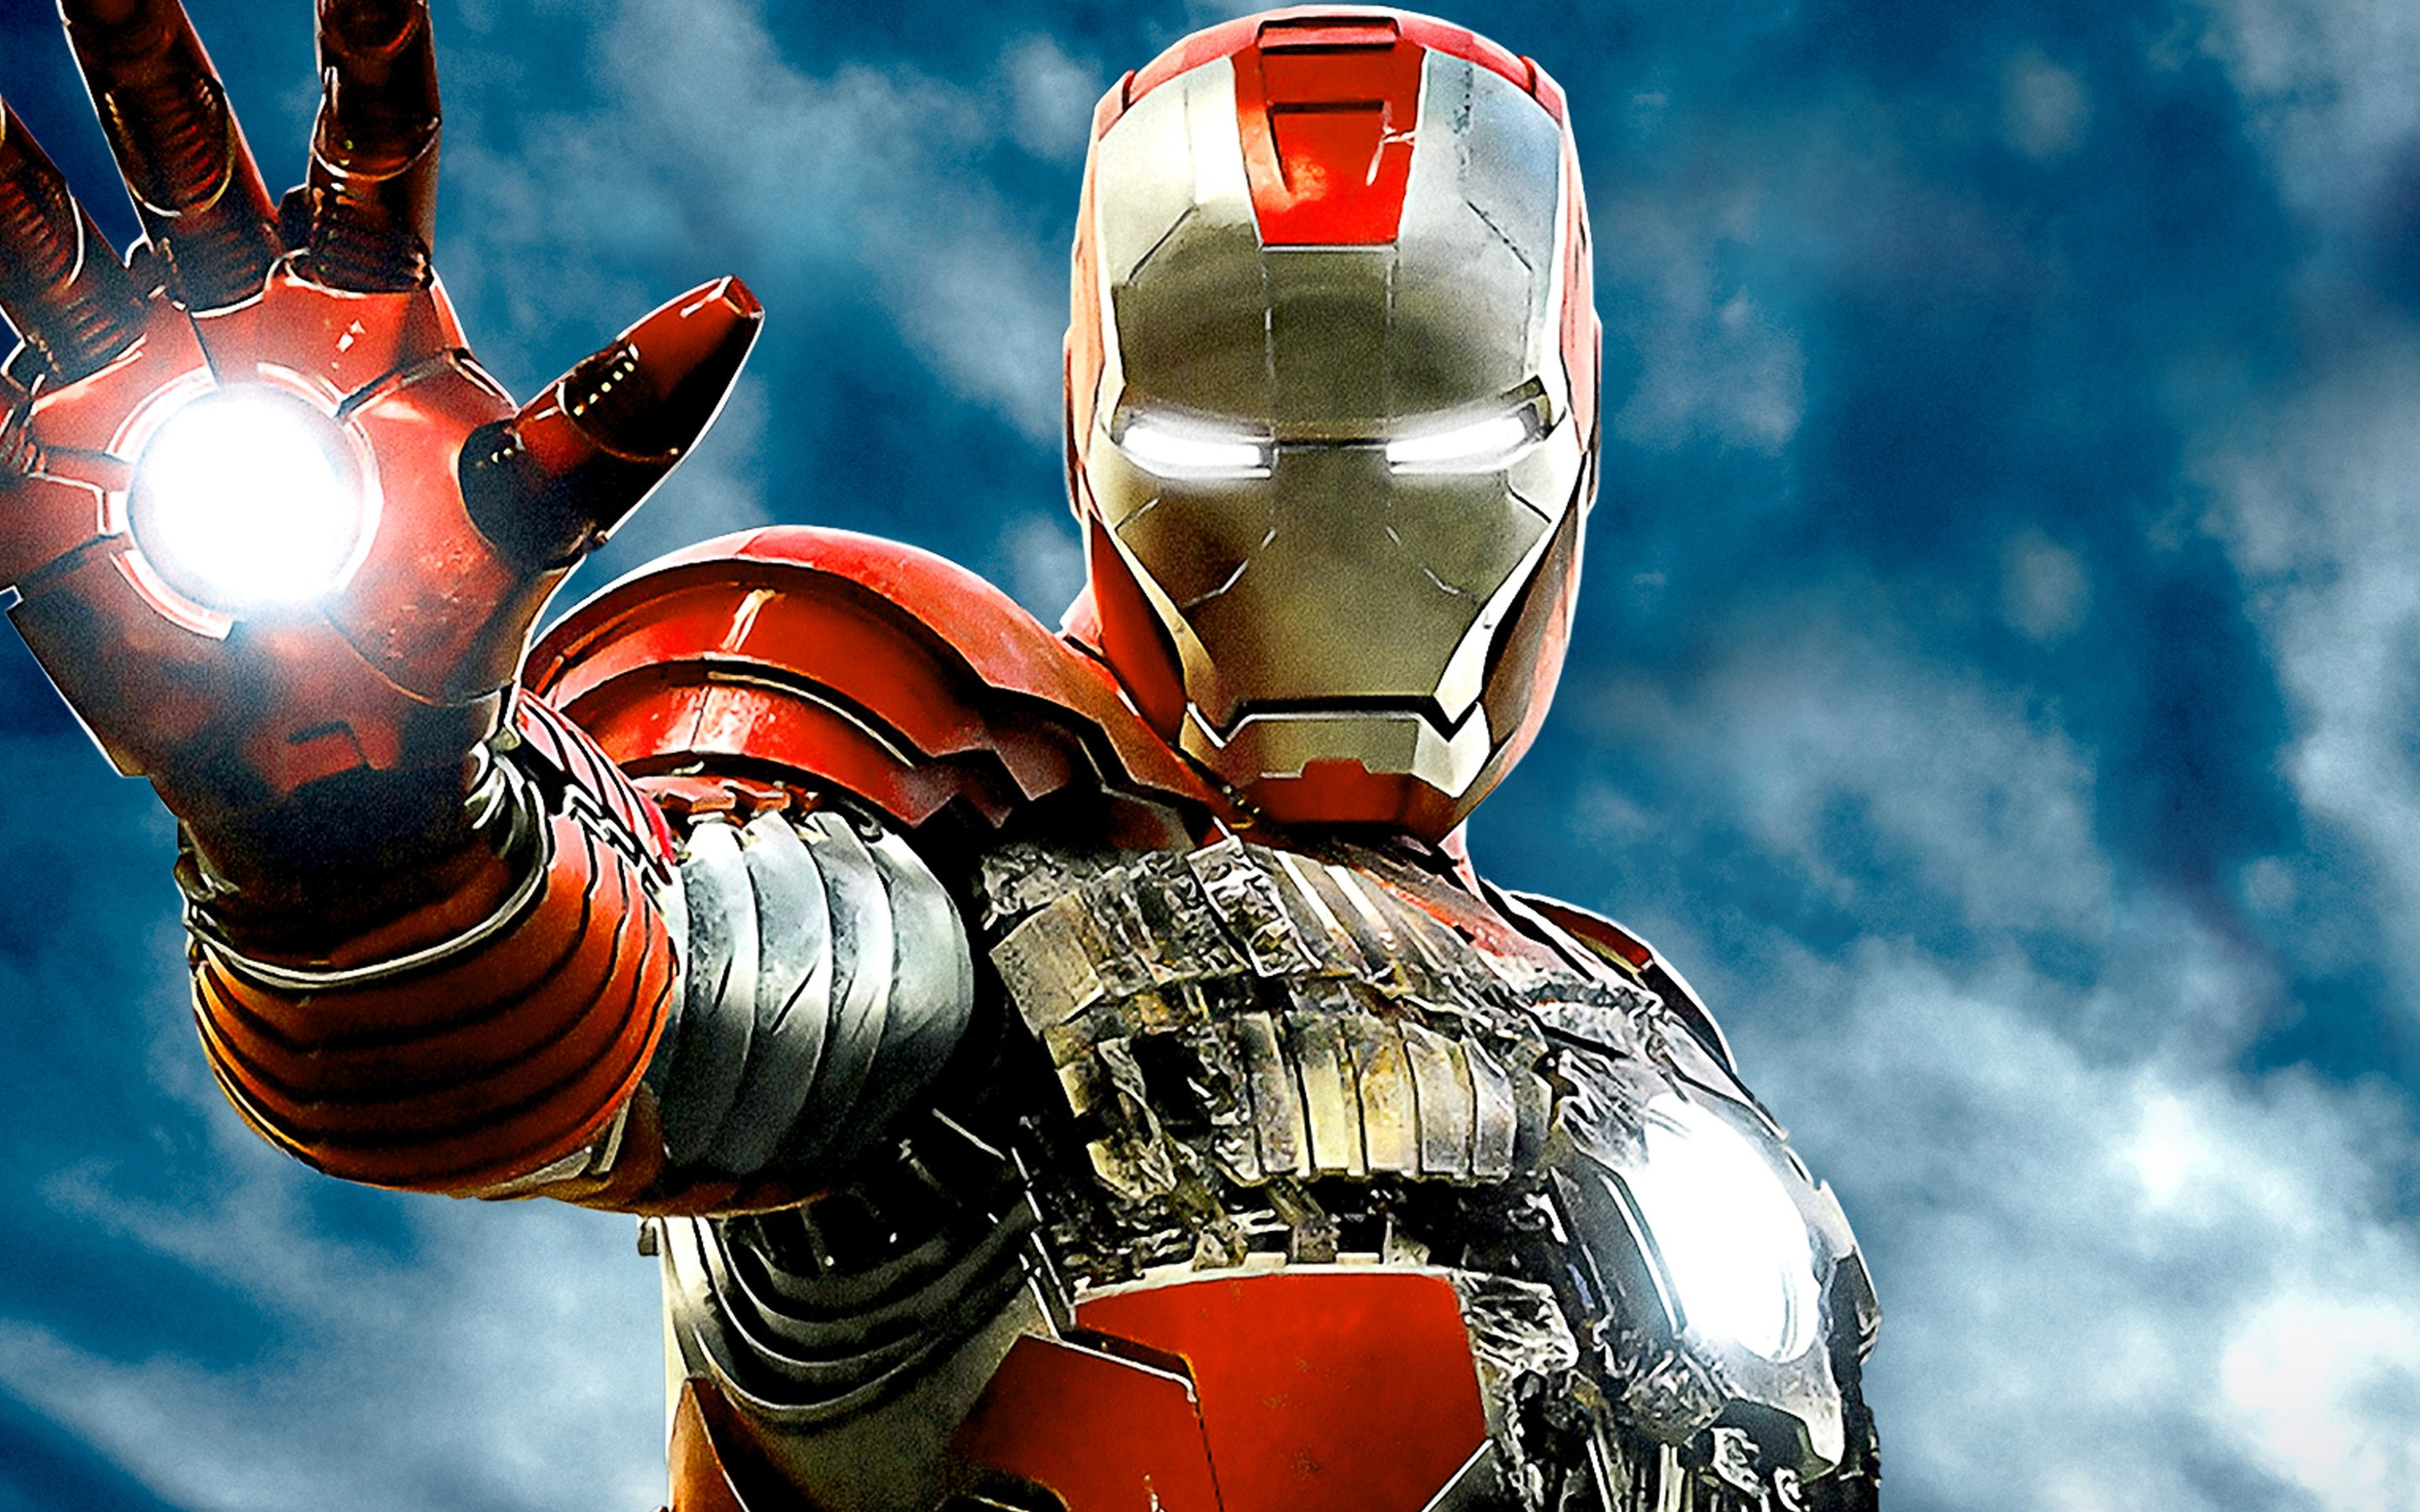 Iron Man 2 IMAX Poster Wallpapers HD Wallpapers 2880x1800